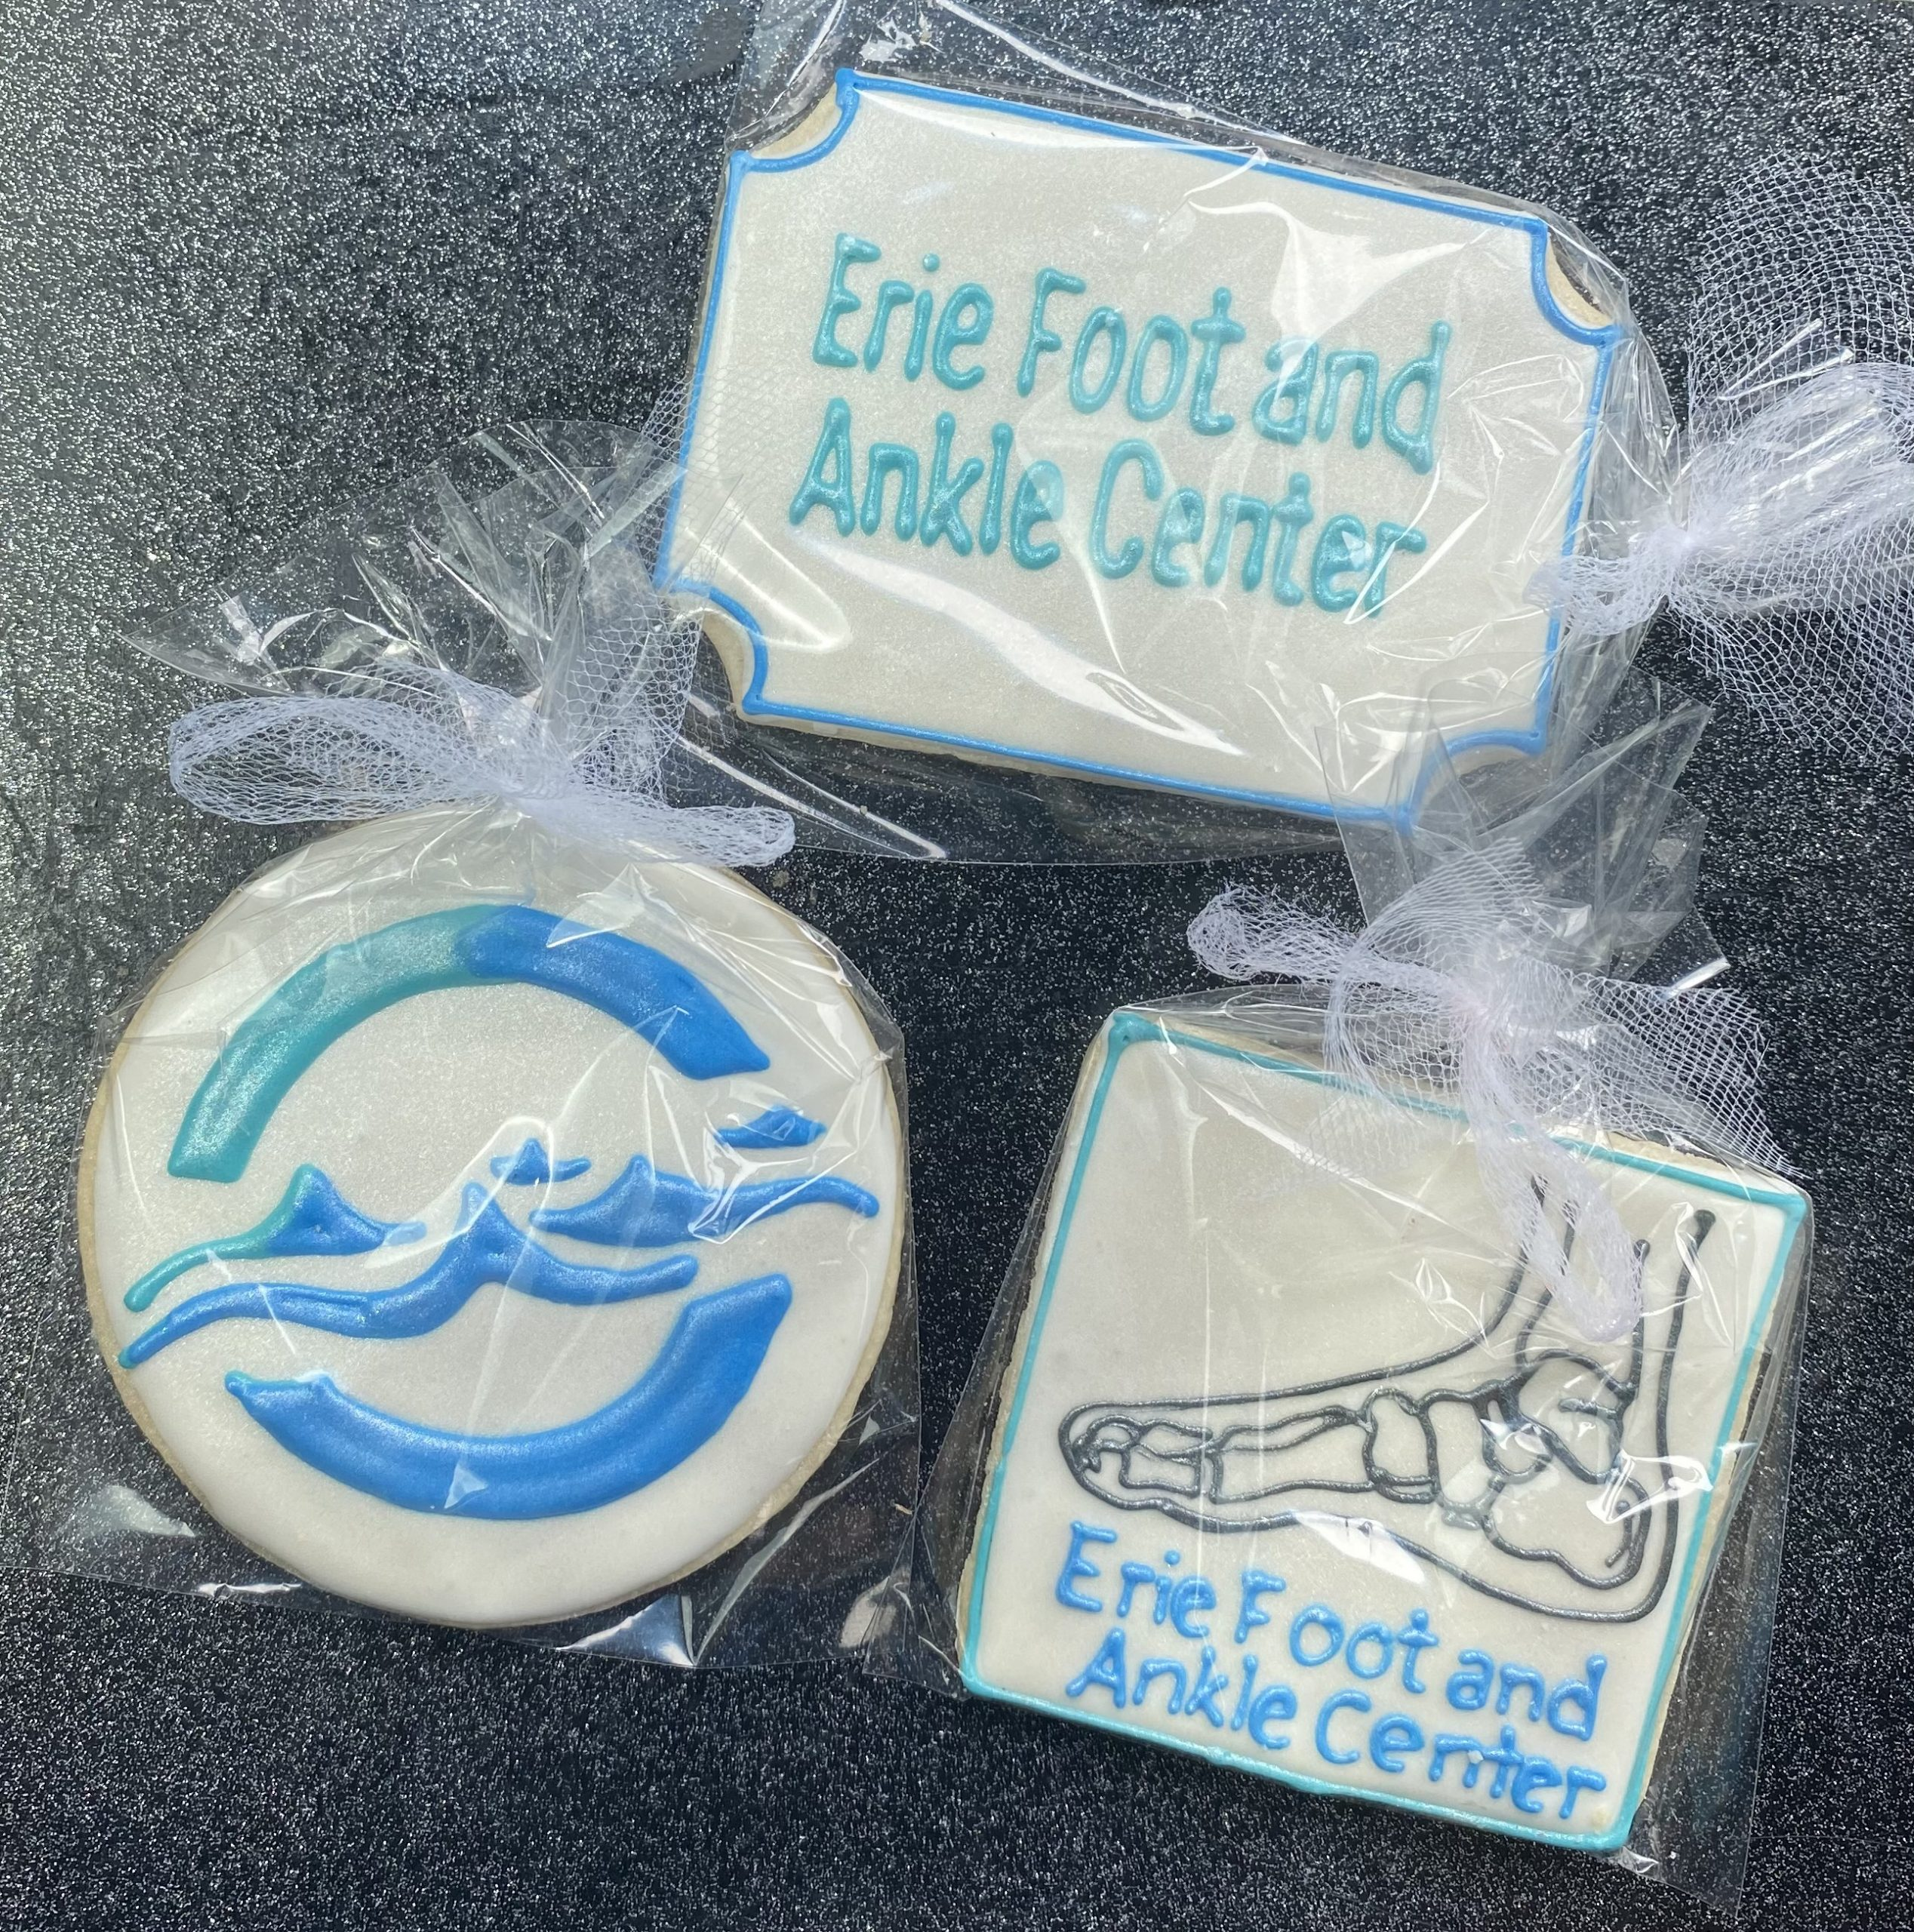 This Brand Ambassador has a new client to represent! It was a great day out connecting for Erie Foot and Ankle Center for the amazing, Dr. Jackie. How great are these cookies?!